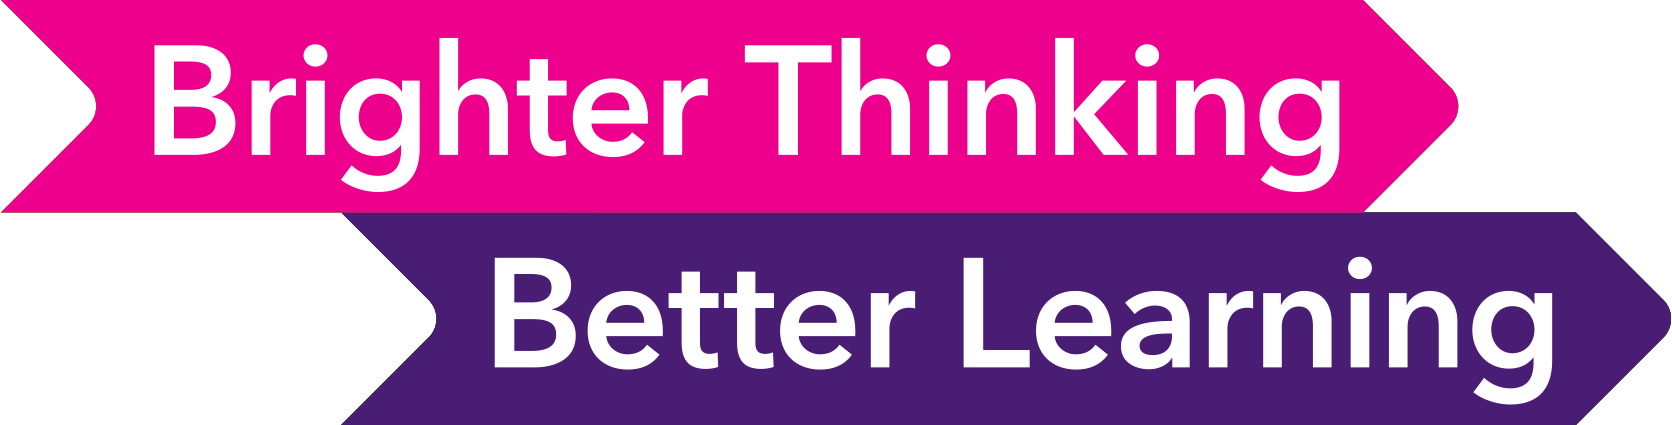 Brighter Thinking, Better Learning Logo